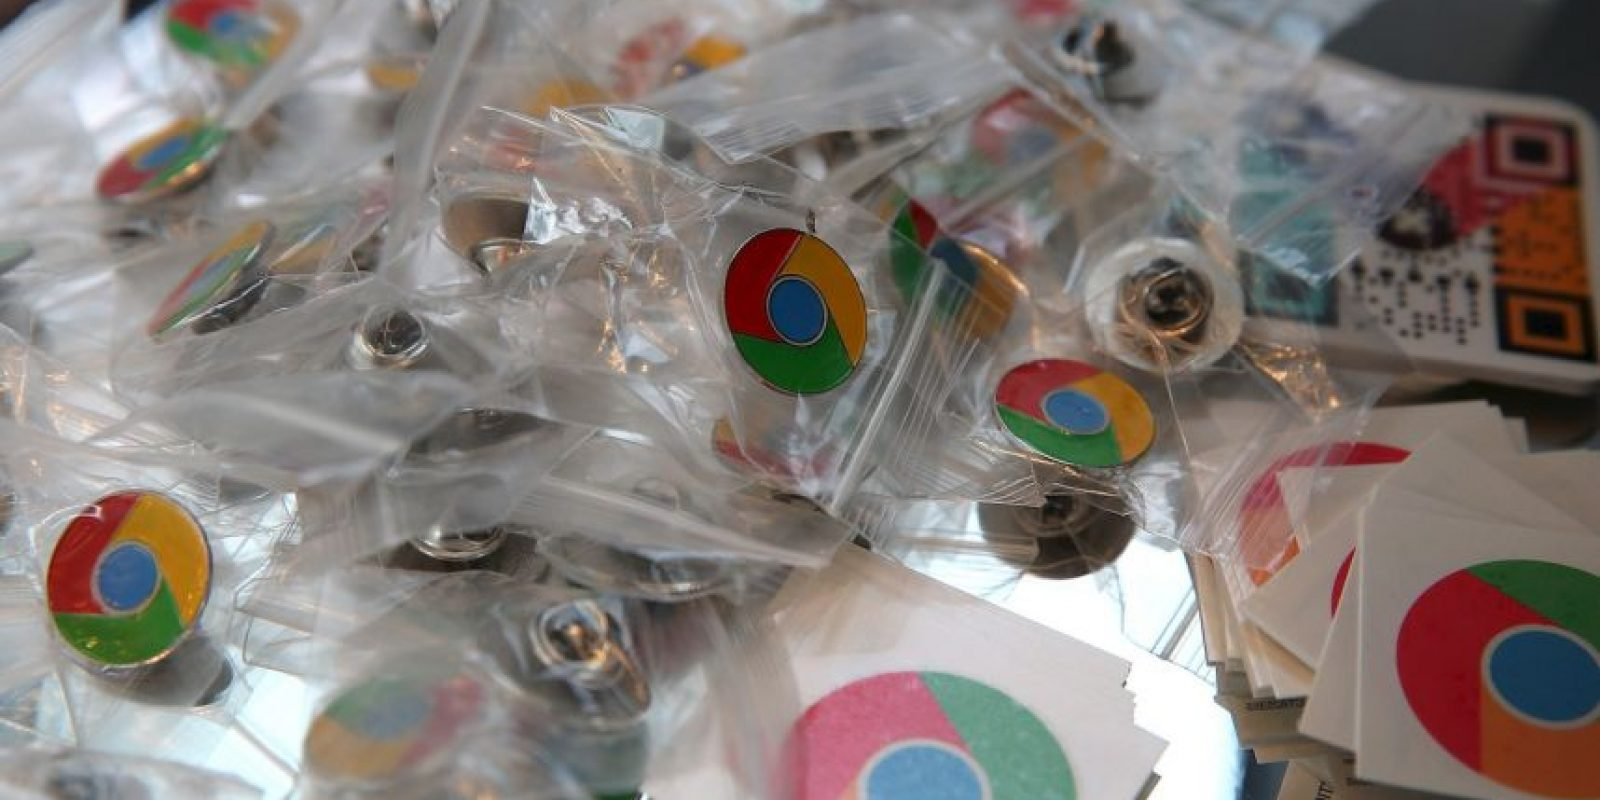 Google Chrome es el buscador más popular actualmente. Foto: Getty